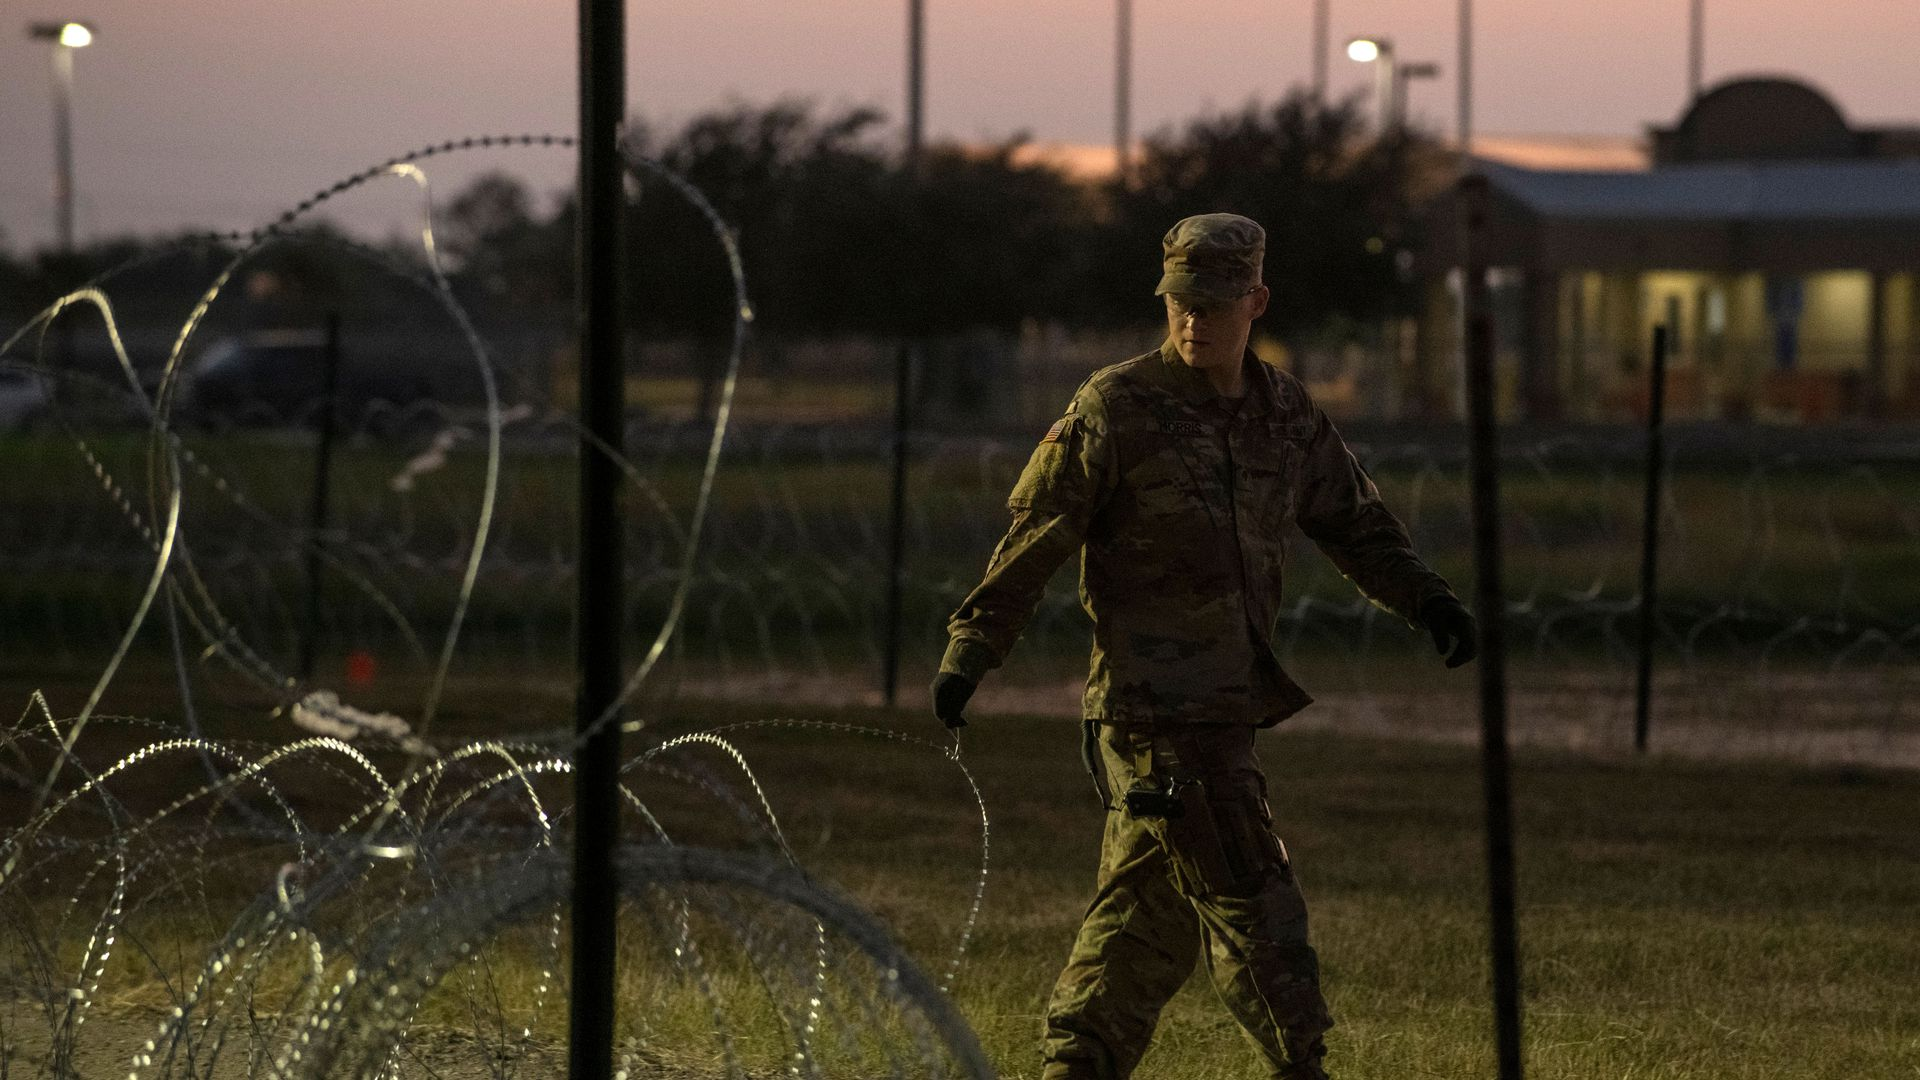 U.S. soldier at the border